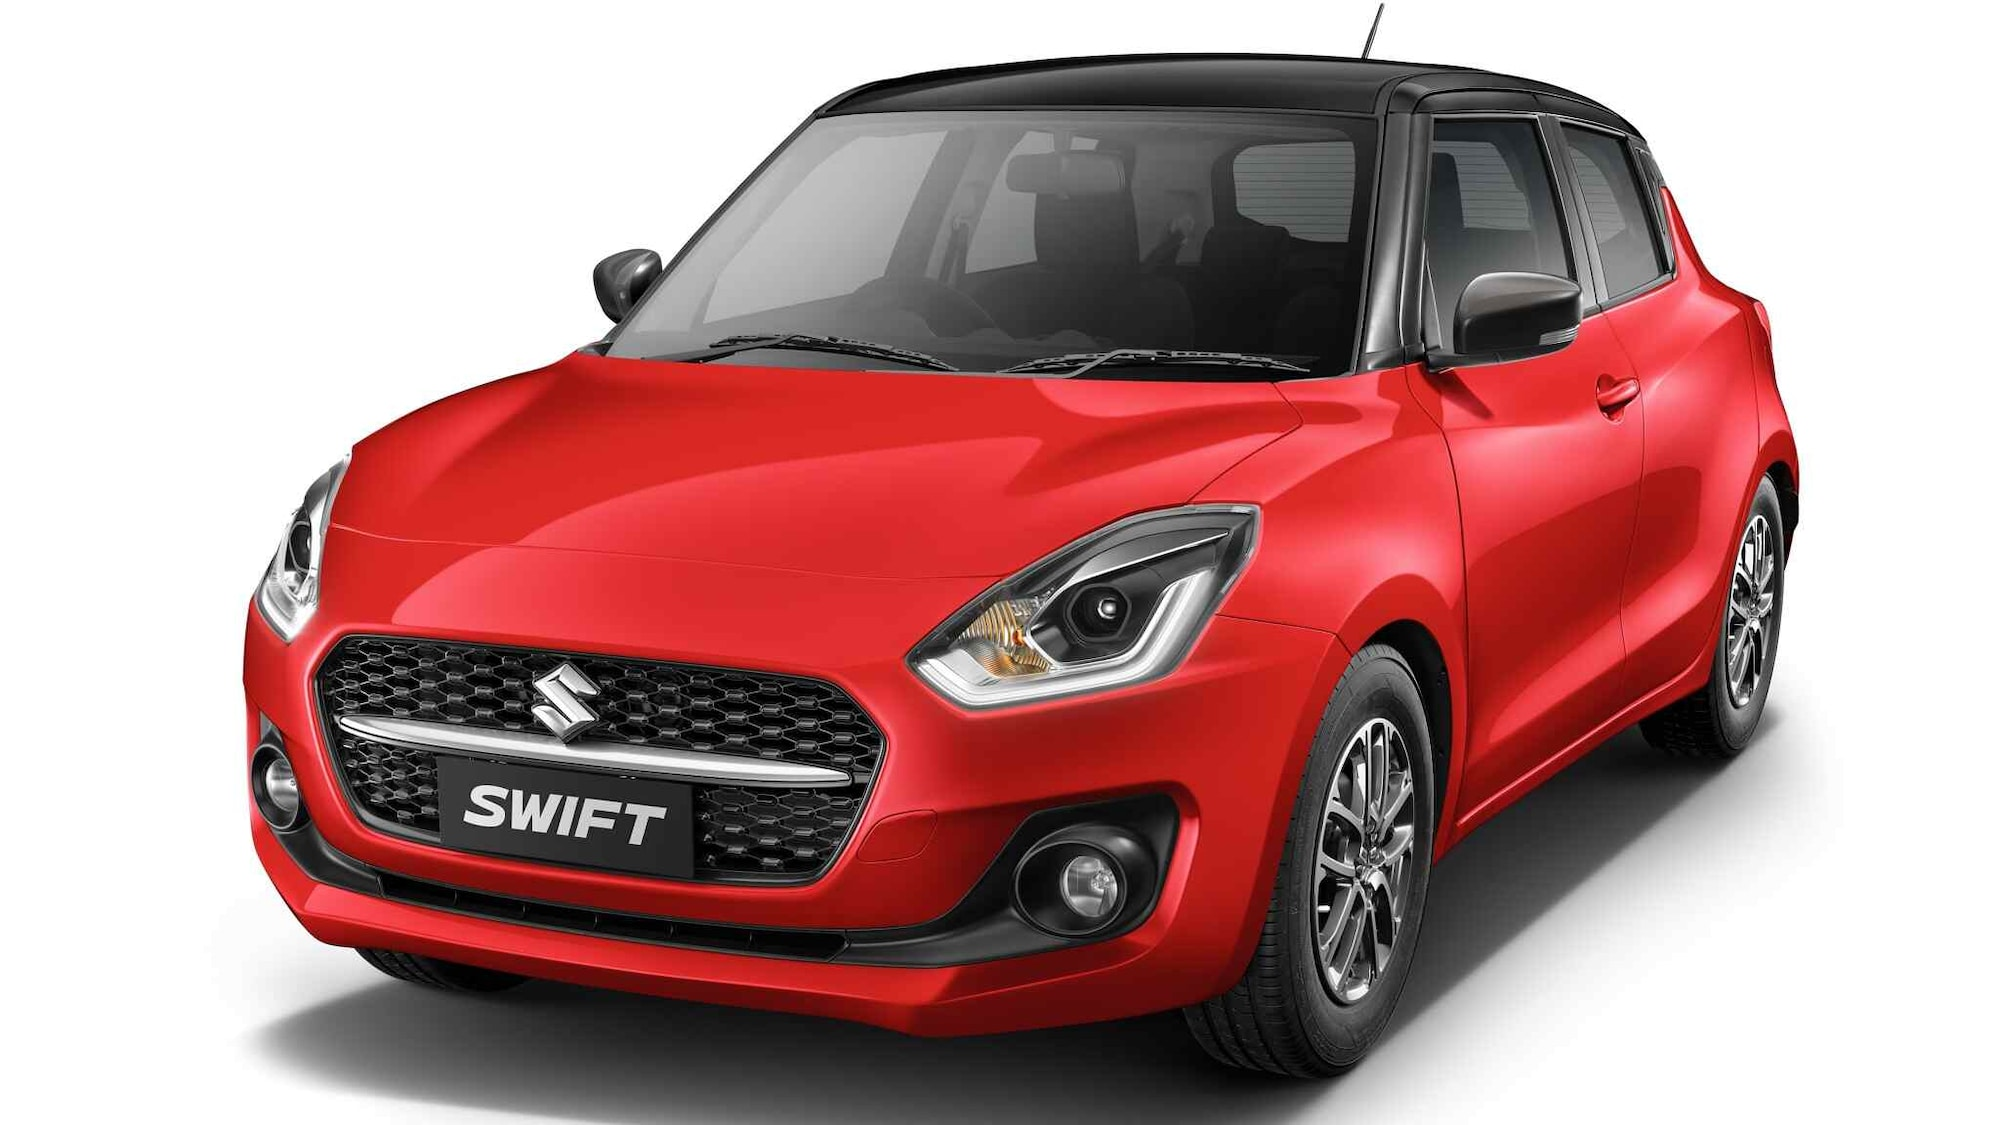 Maruti Suzuki Swift 2021 launched in India, prices range from Rs 5.73 – 8.41 lakh